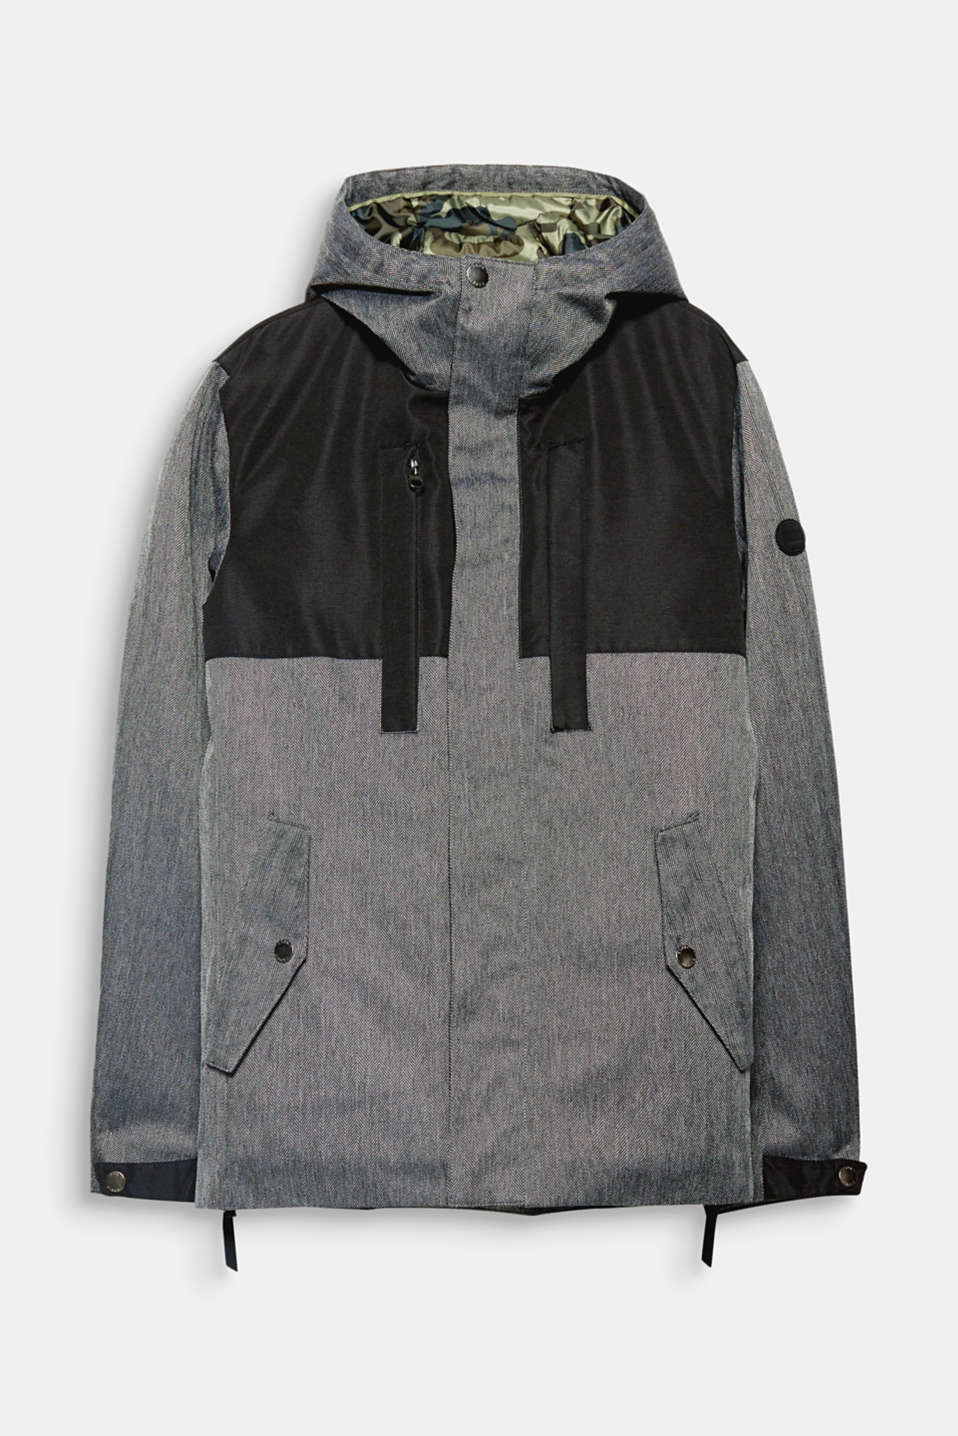 This hooded jacket with warm padding will be a loyal companion through wind and rain.